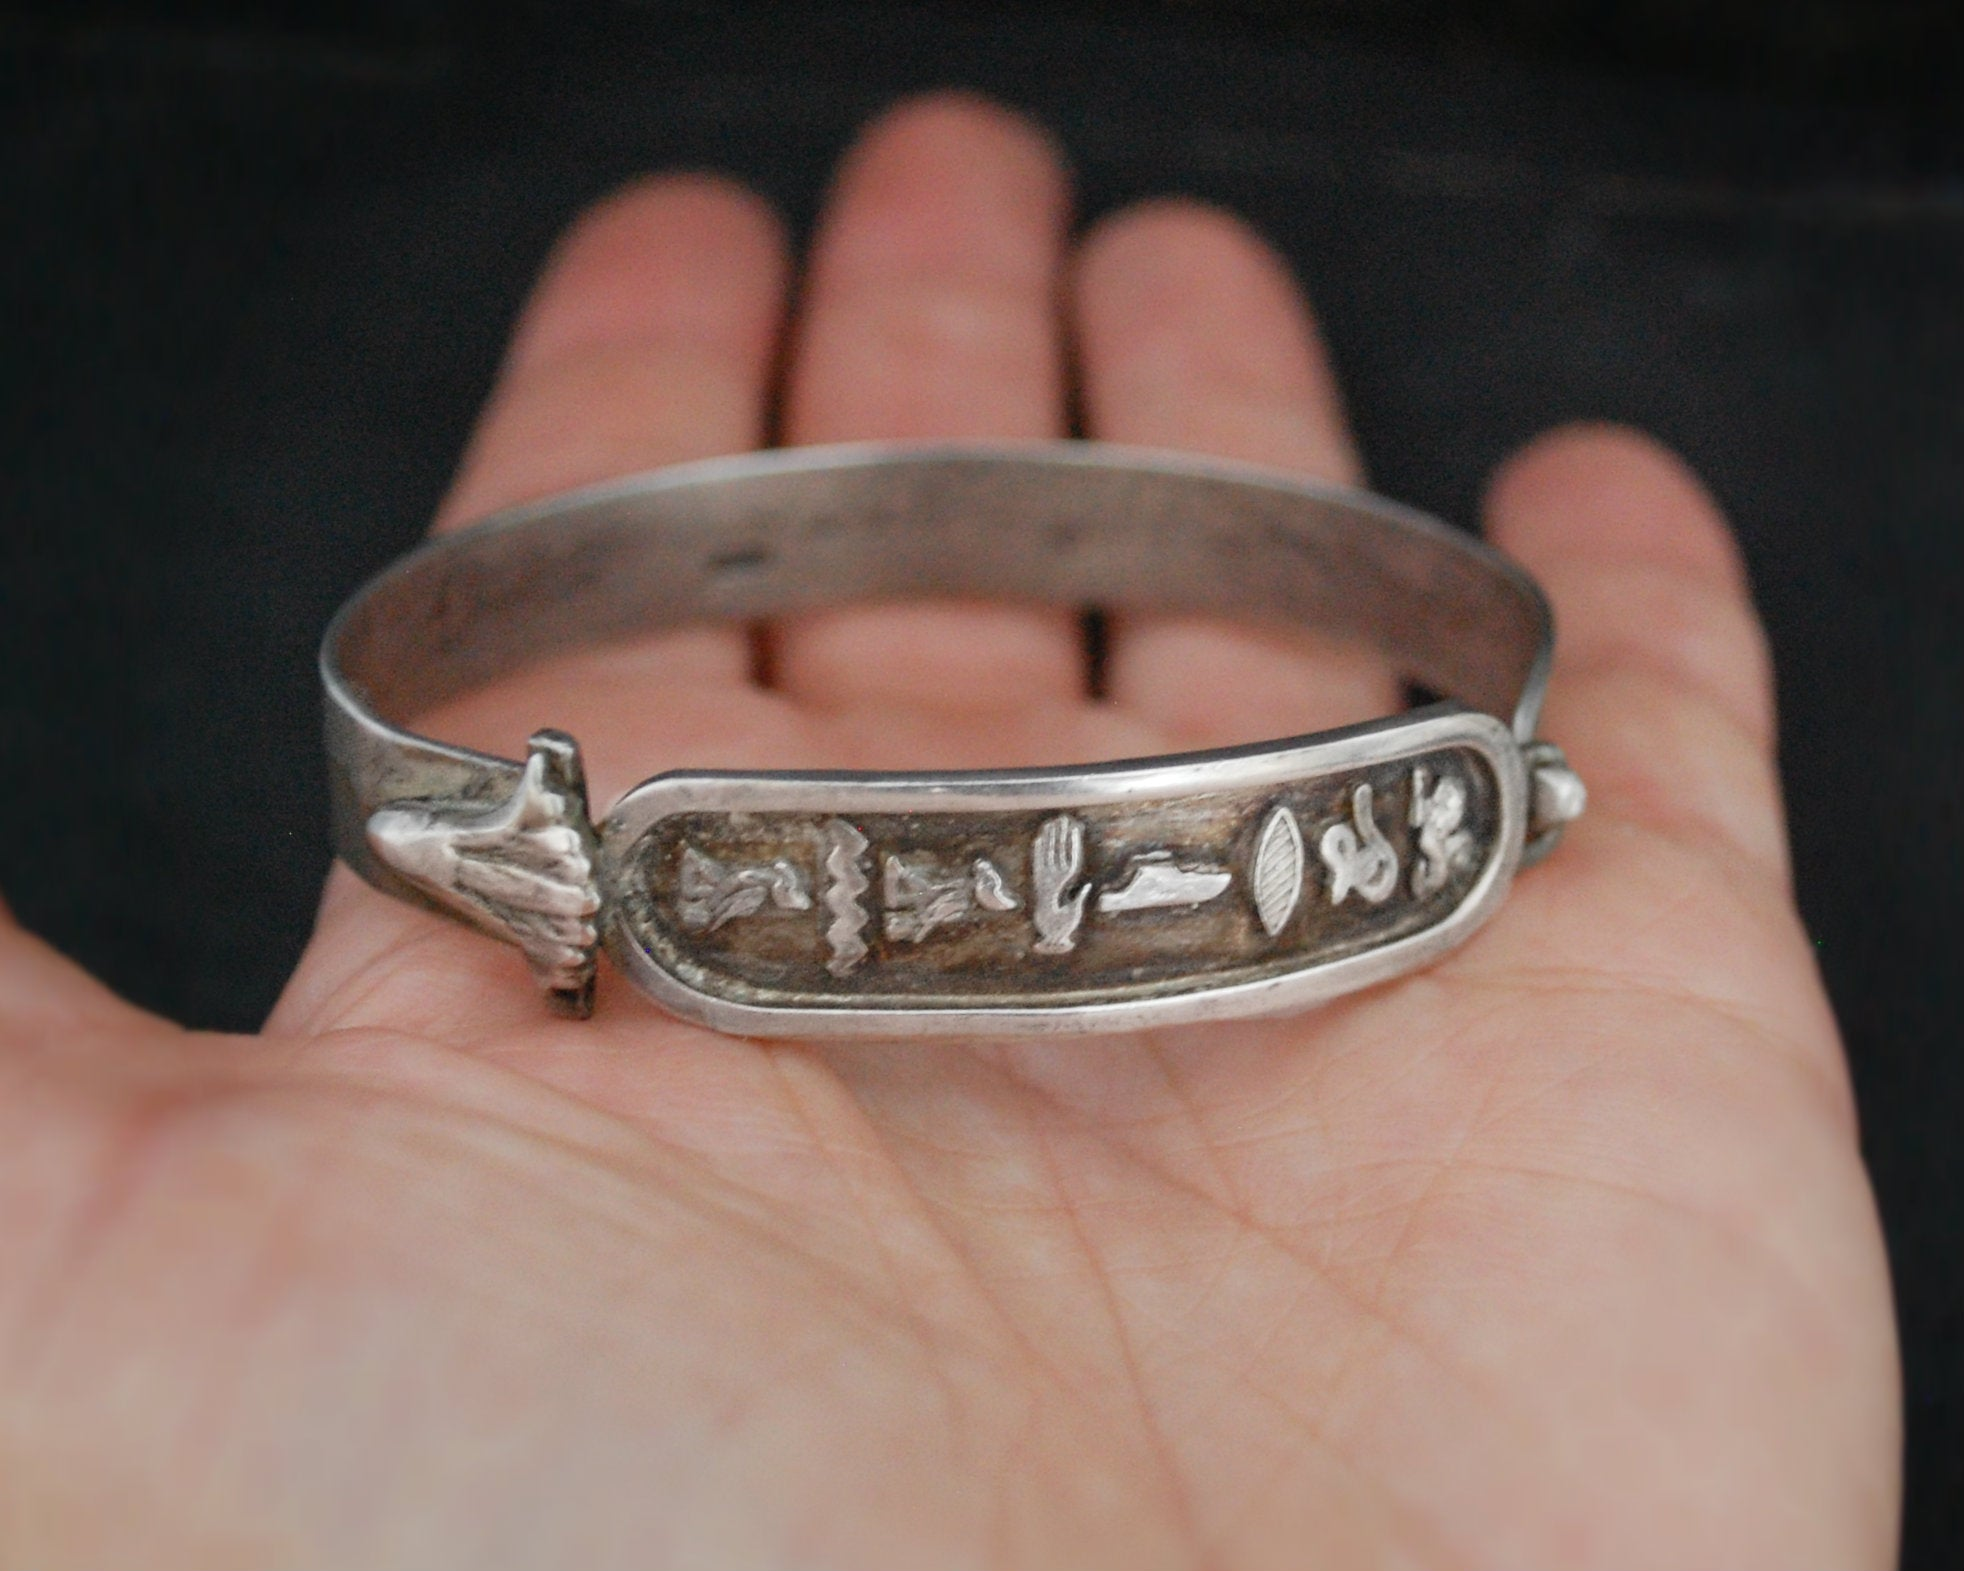 Egyptian Hieroglyph Bracelet - SMALL